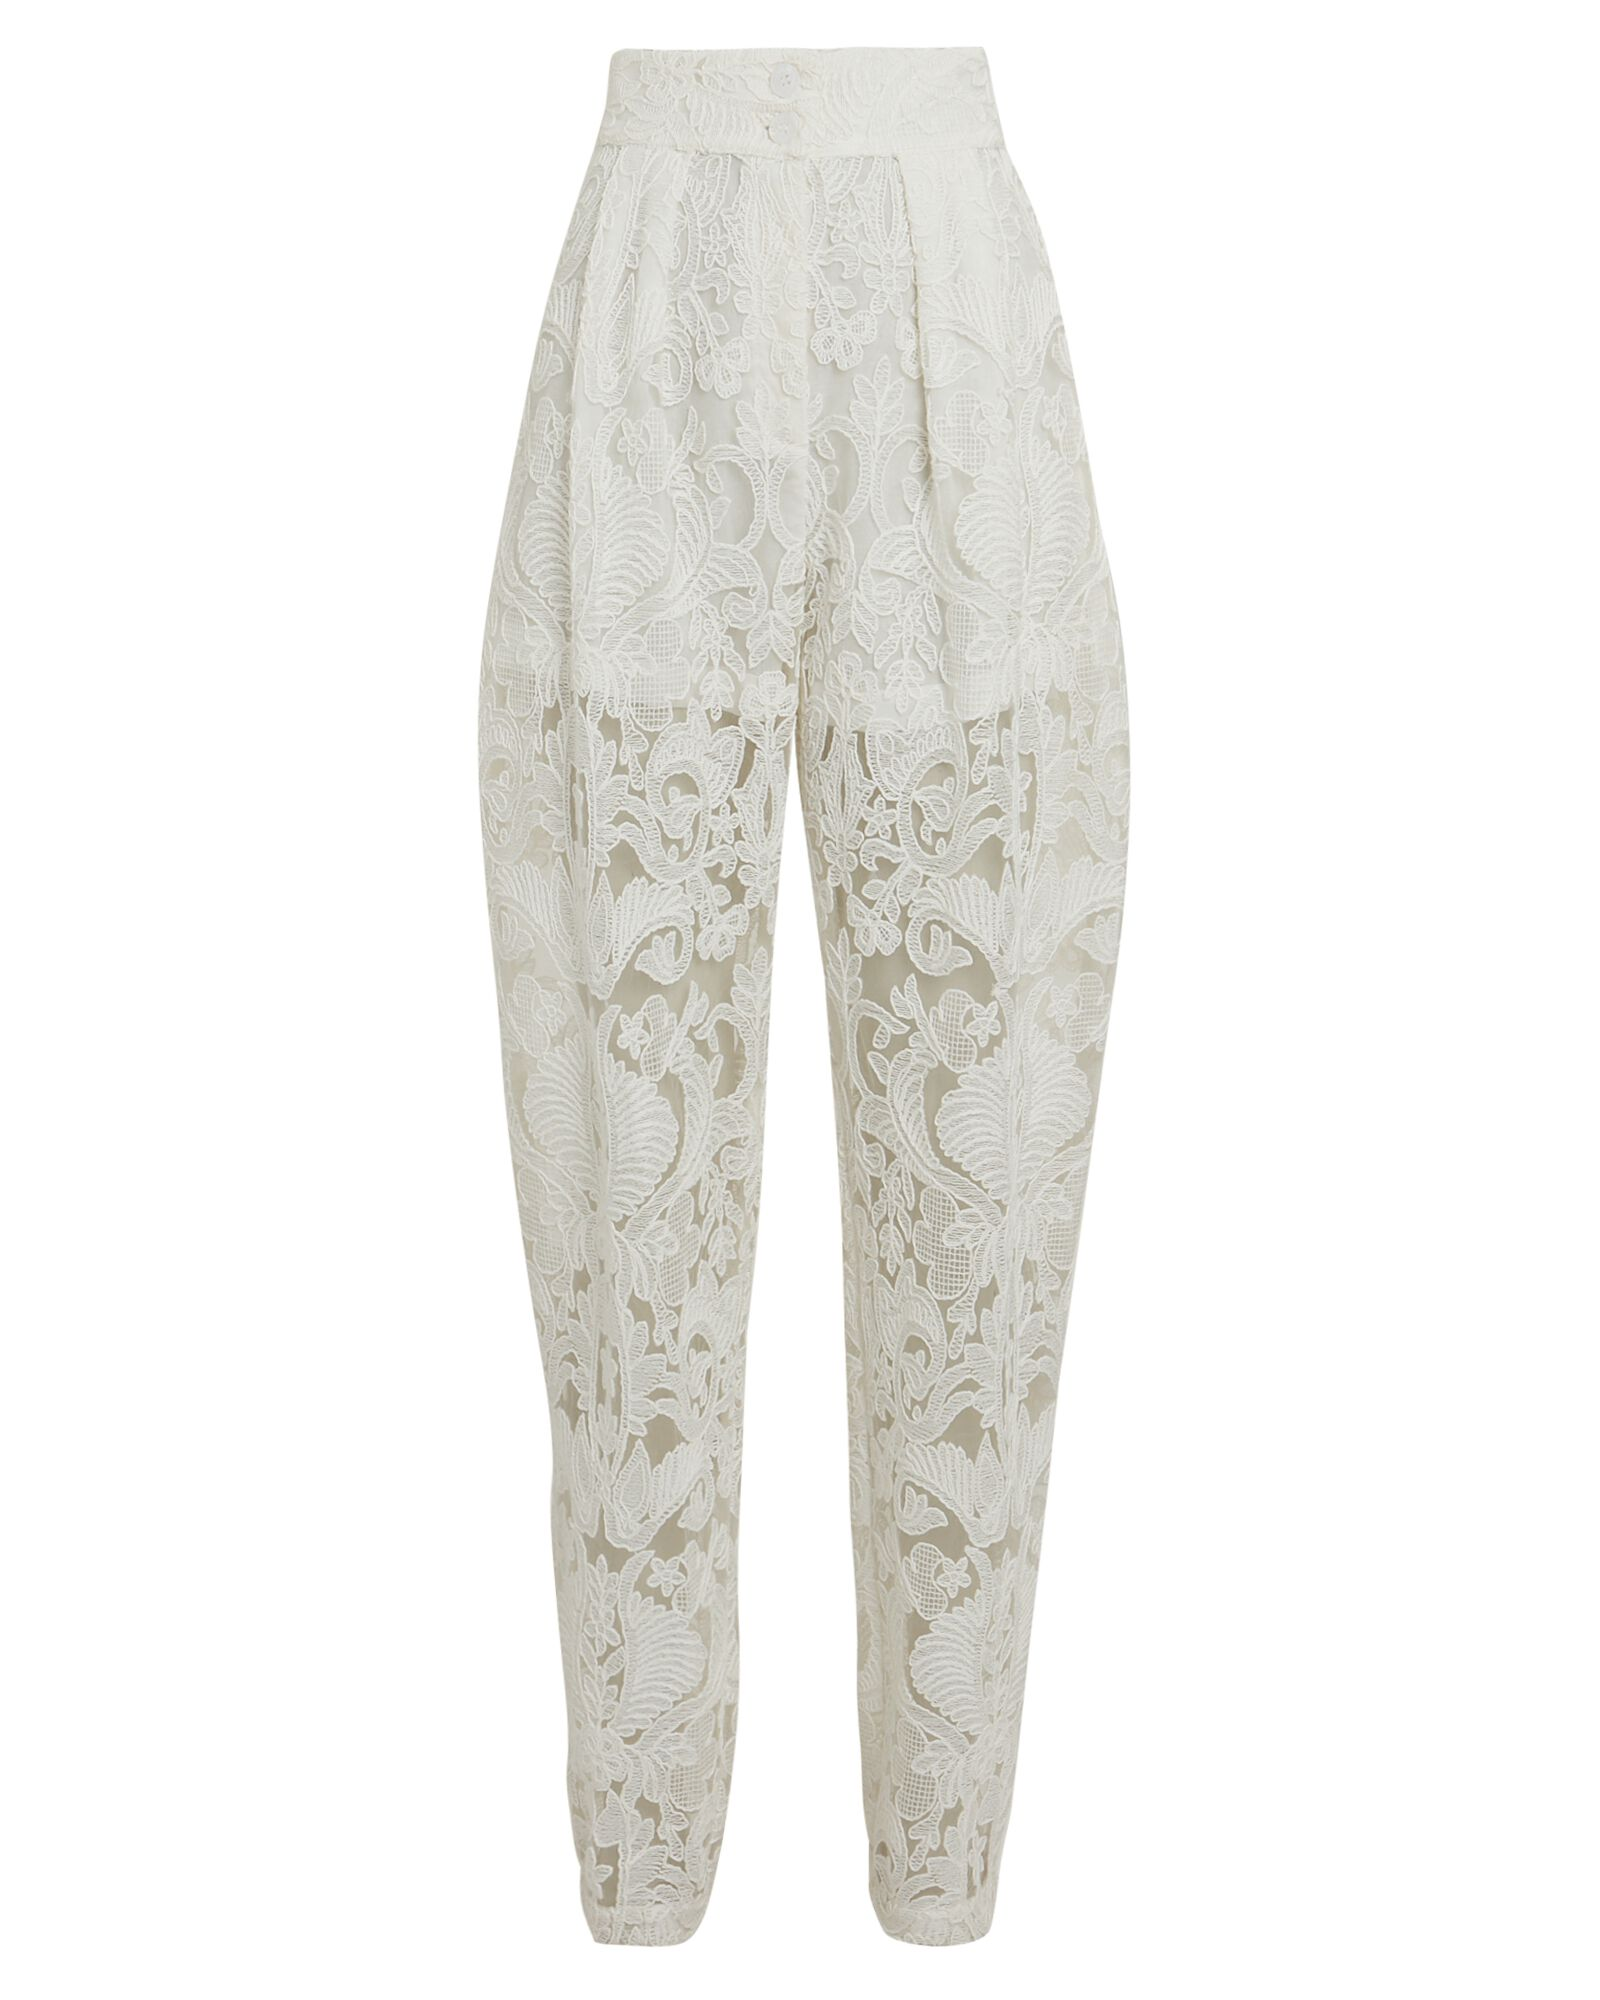 Luther Tapered Lace Pants, WHITE, hi-res